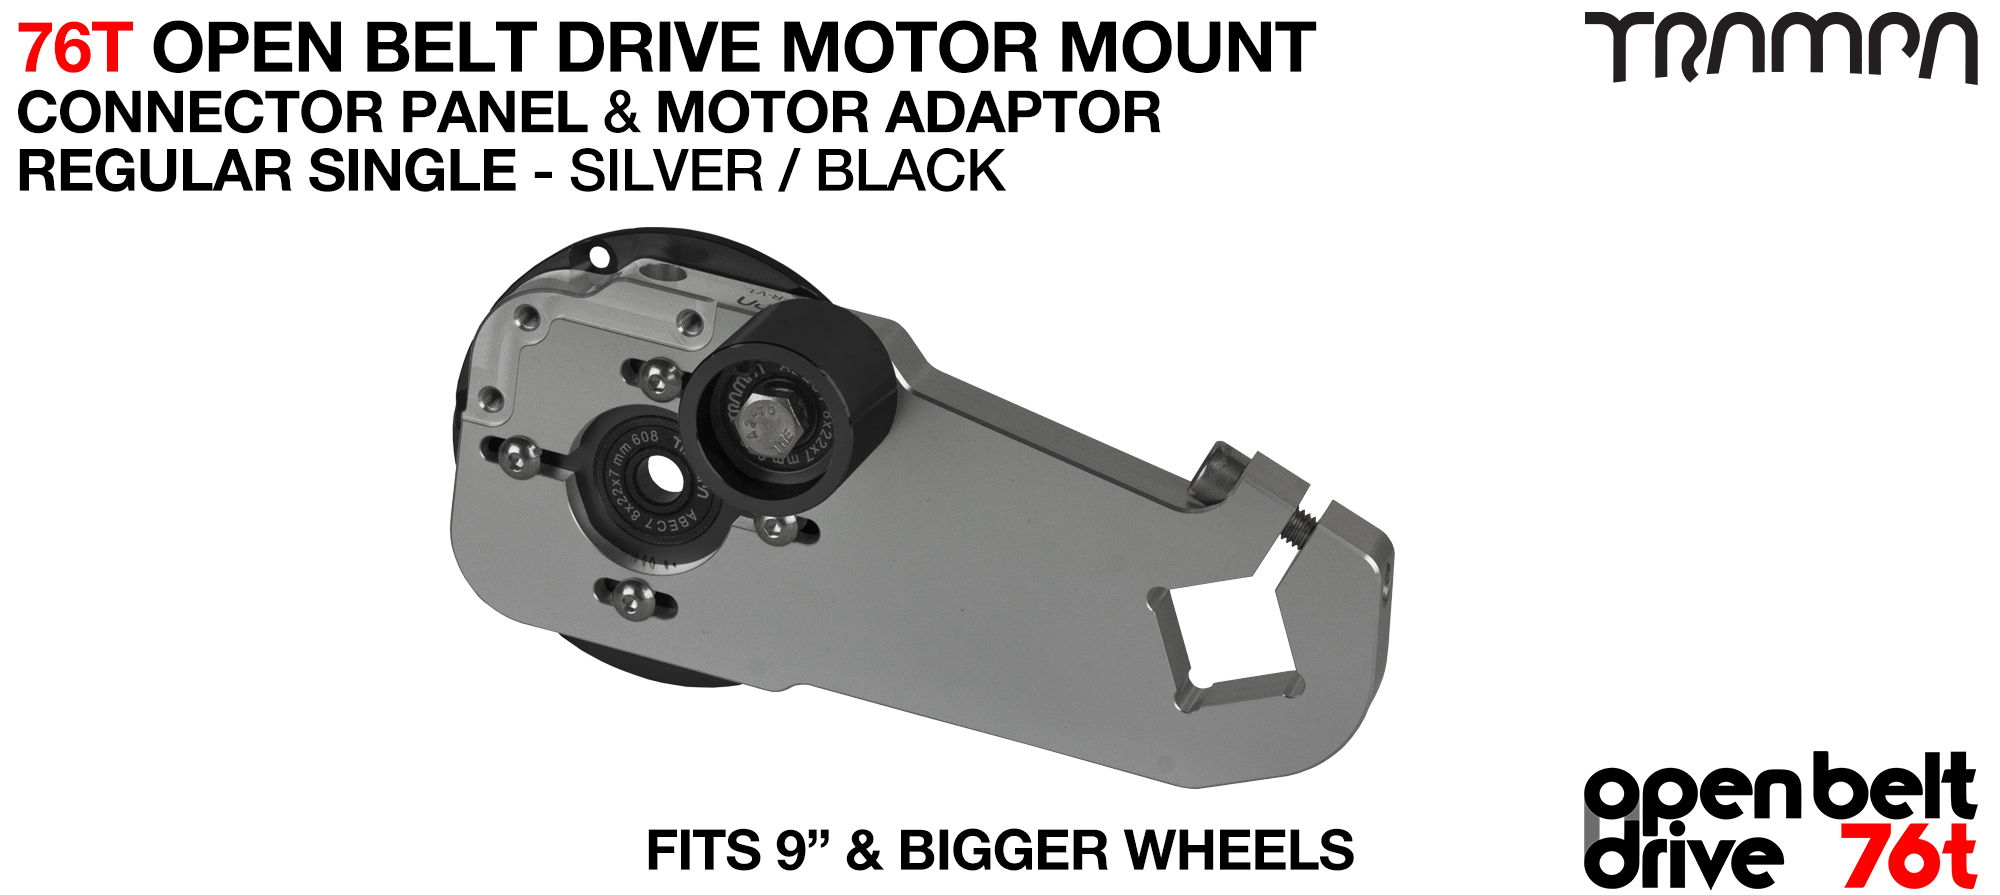 76T Open Belt Drive Motor Mount & Motor Adaptor - SINGLE SILVER